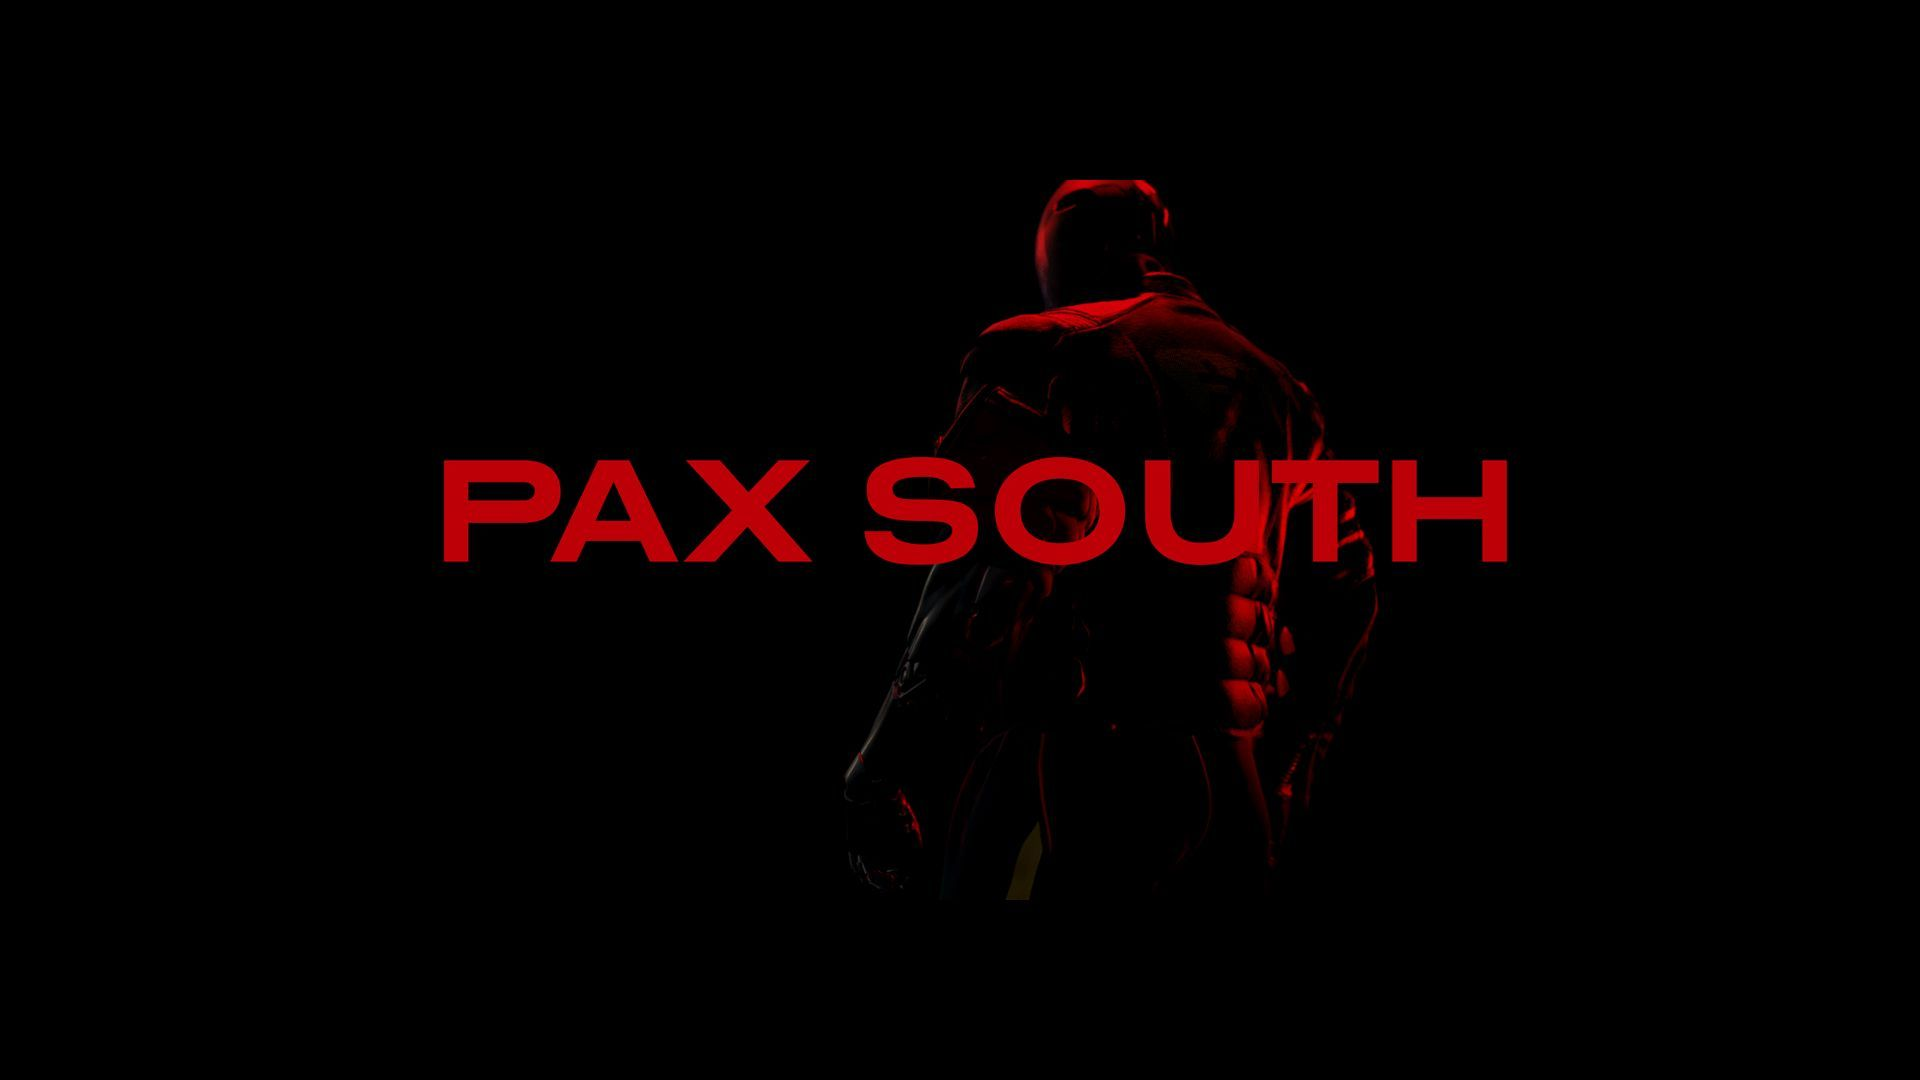 RUINER COMING TO PAX SOUTH